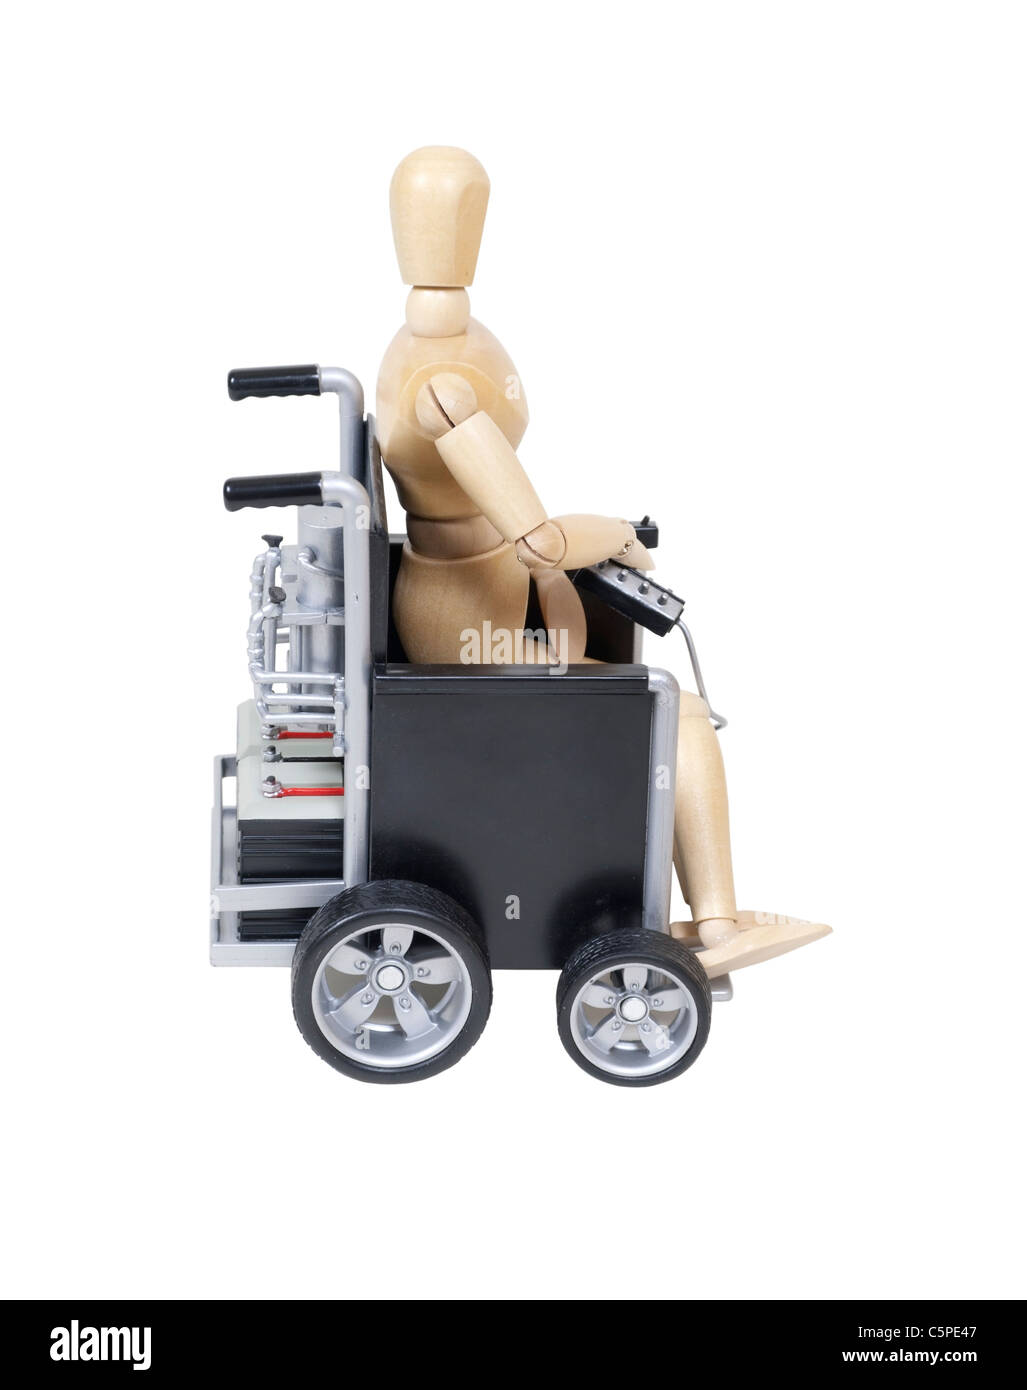 Electrical wheelchair - Stock Image